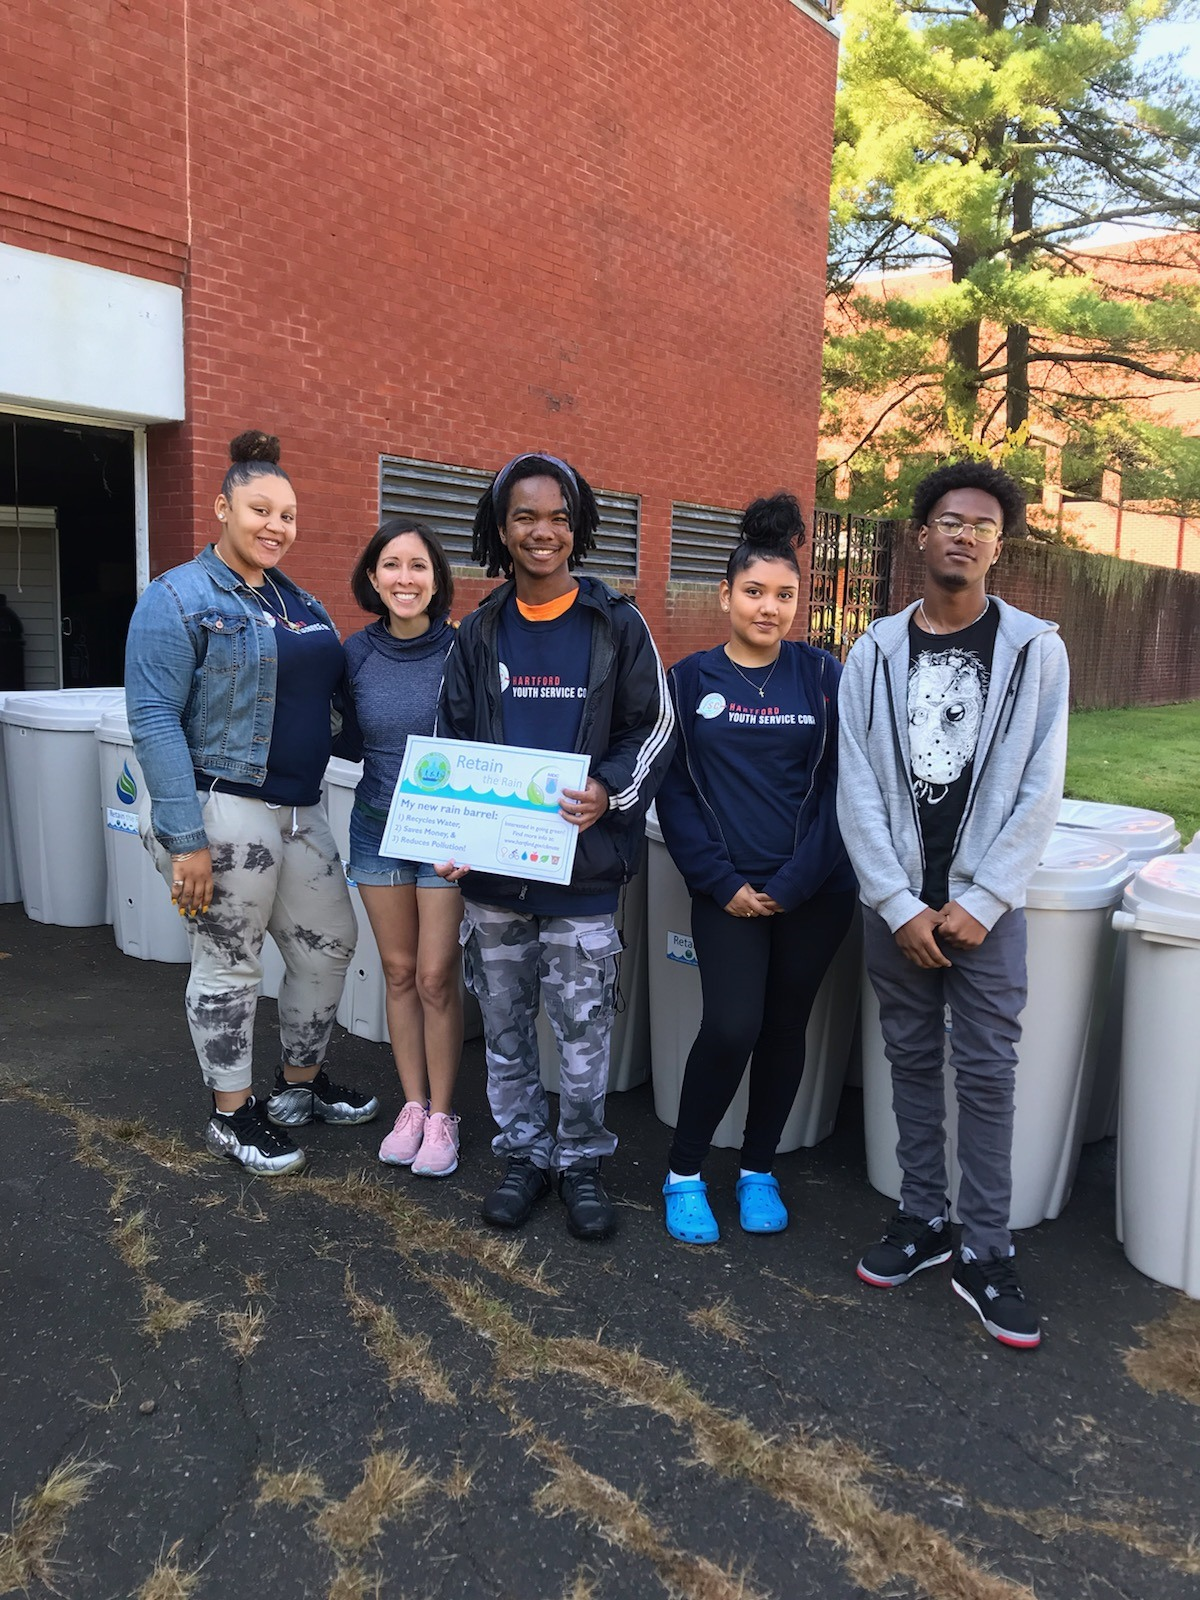 Youth Service Corps Members help give out rain barrels